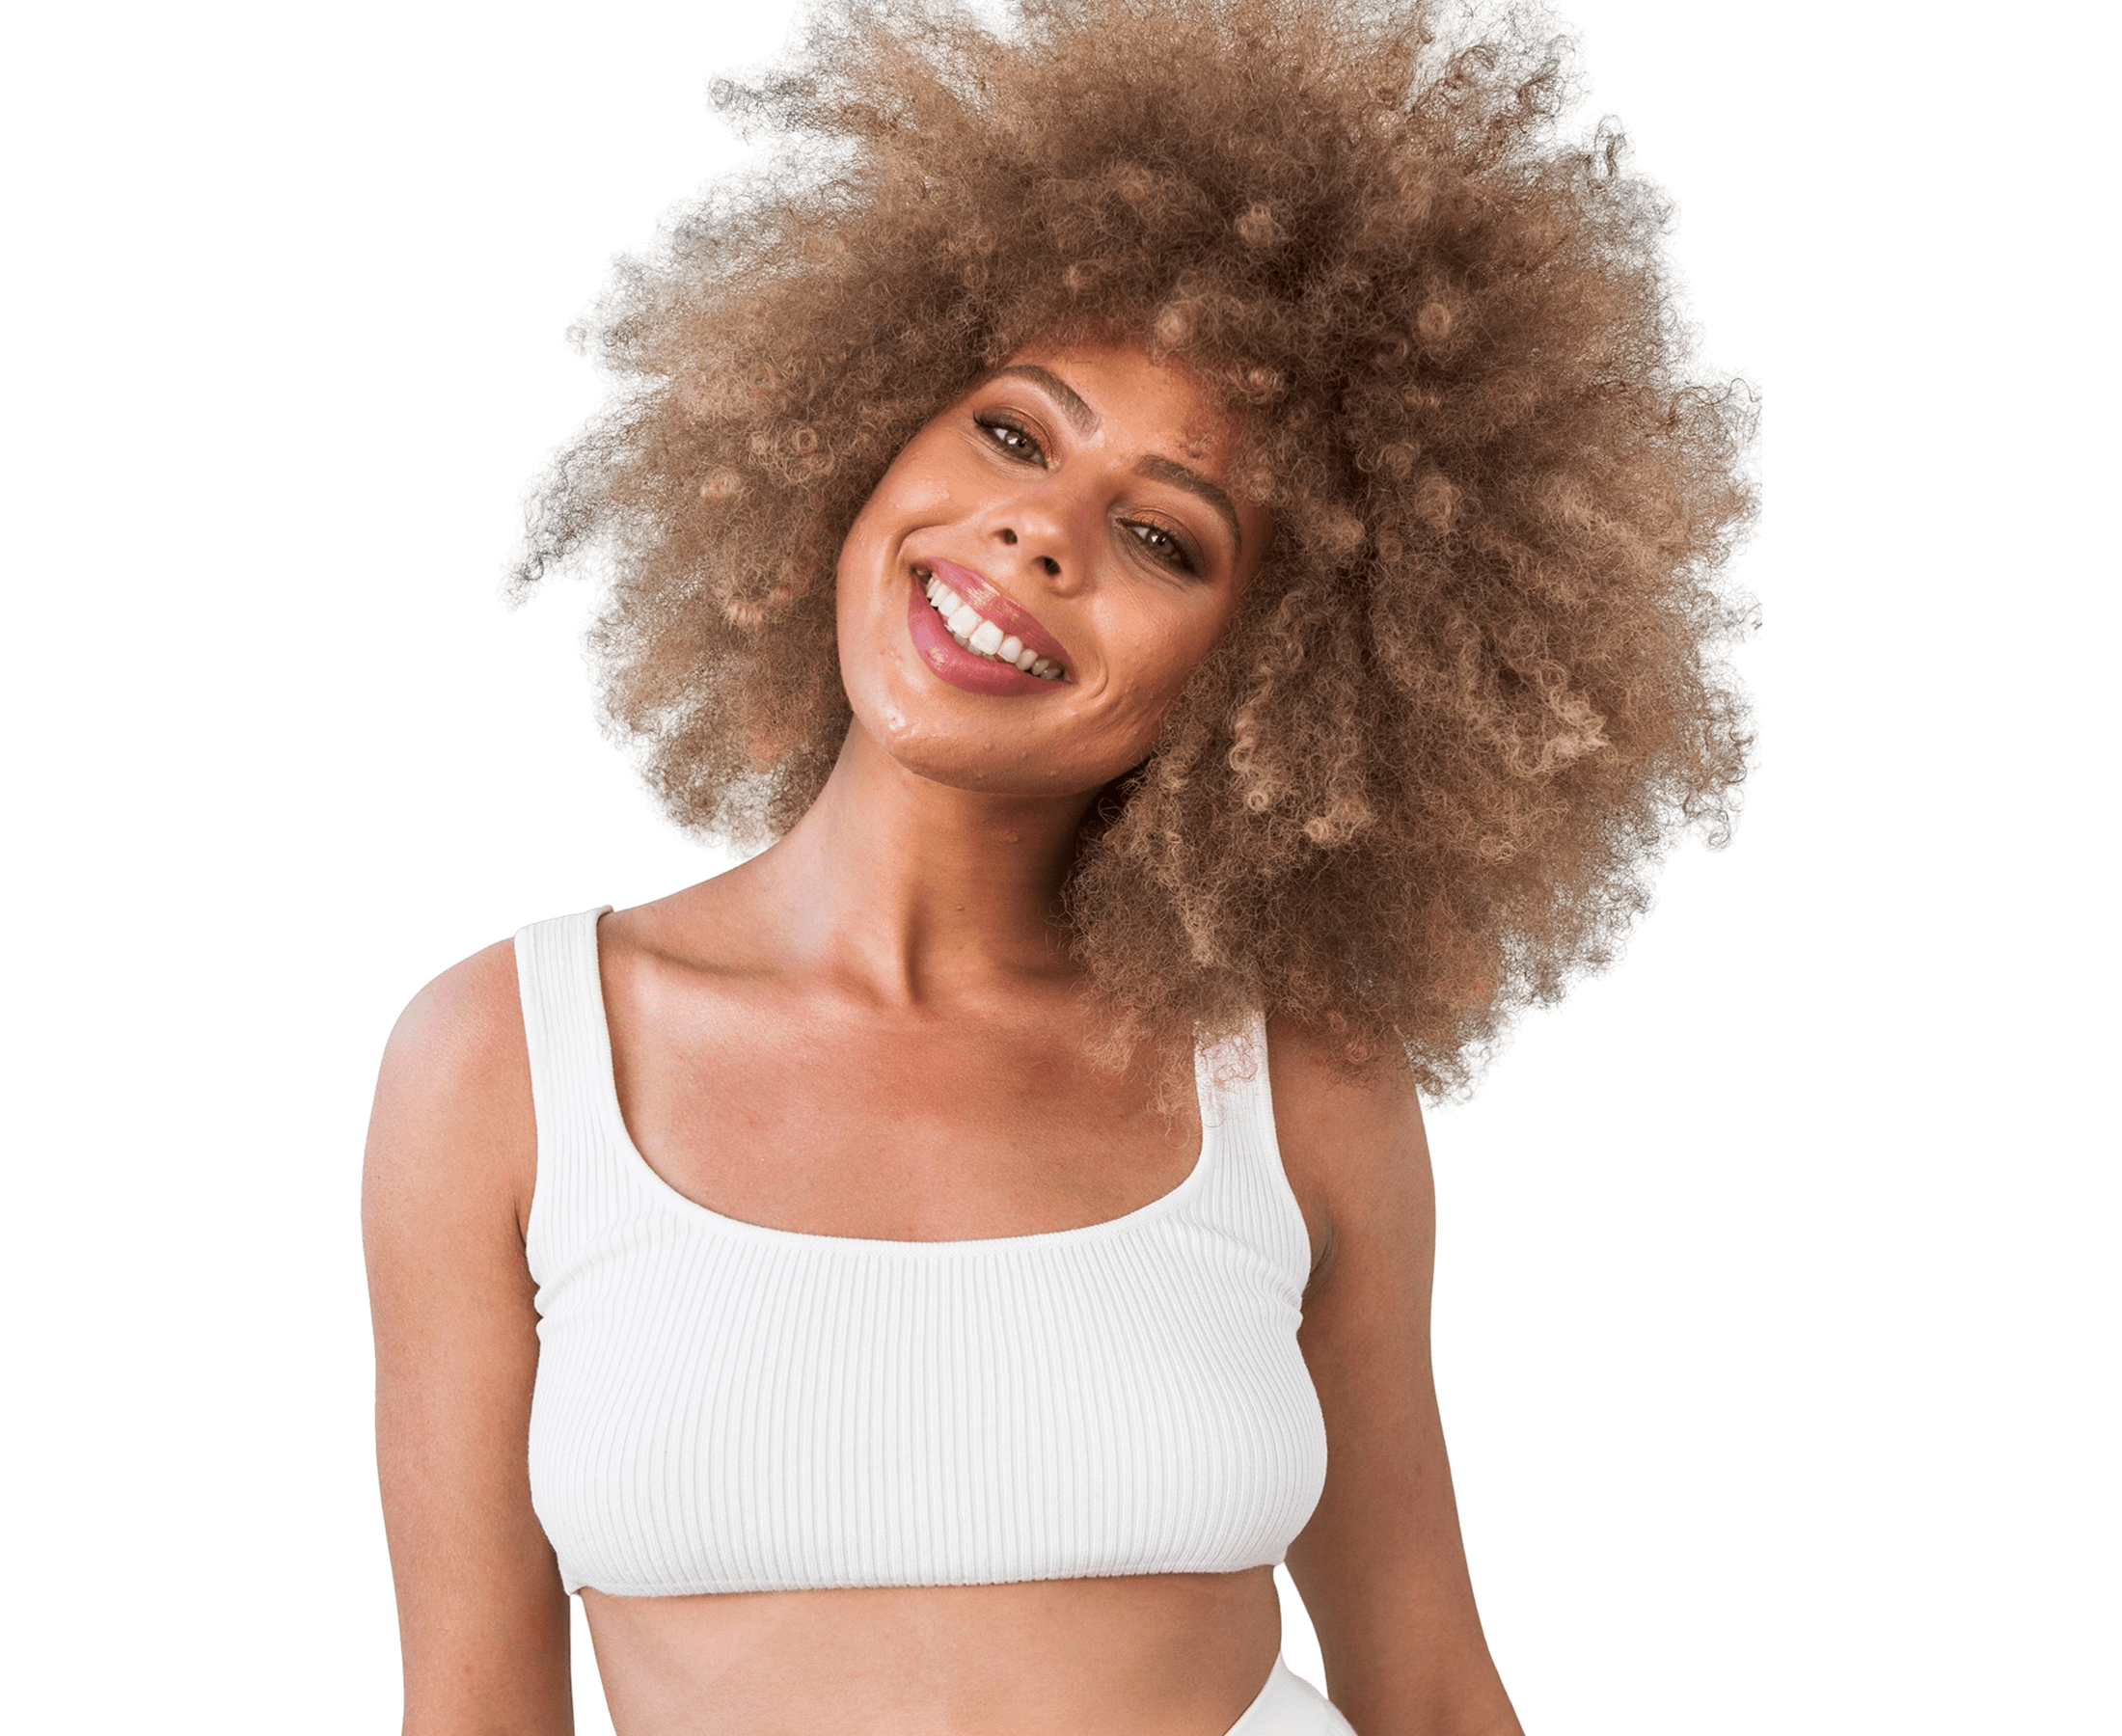 Woman smiling with big blonde super curly hair